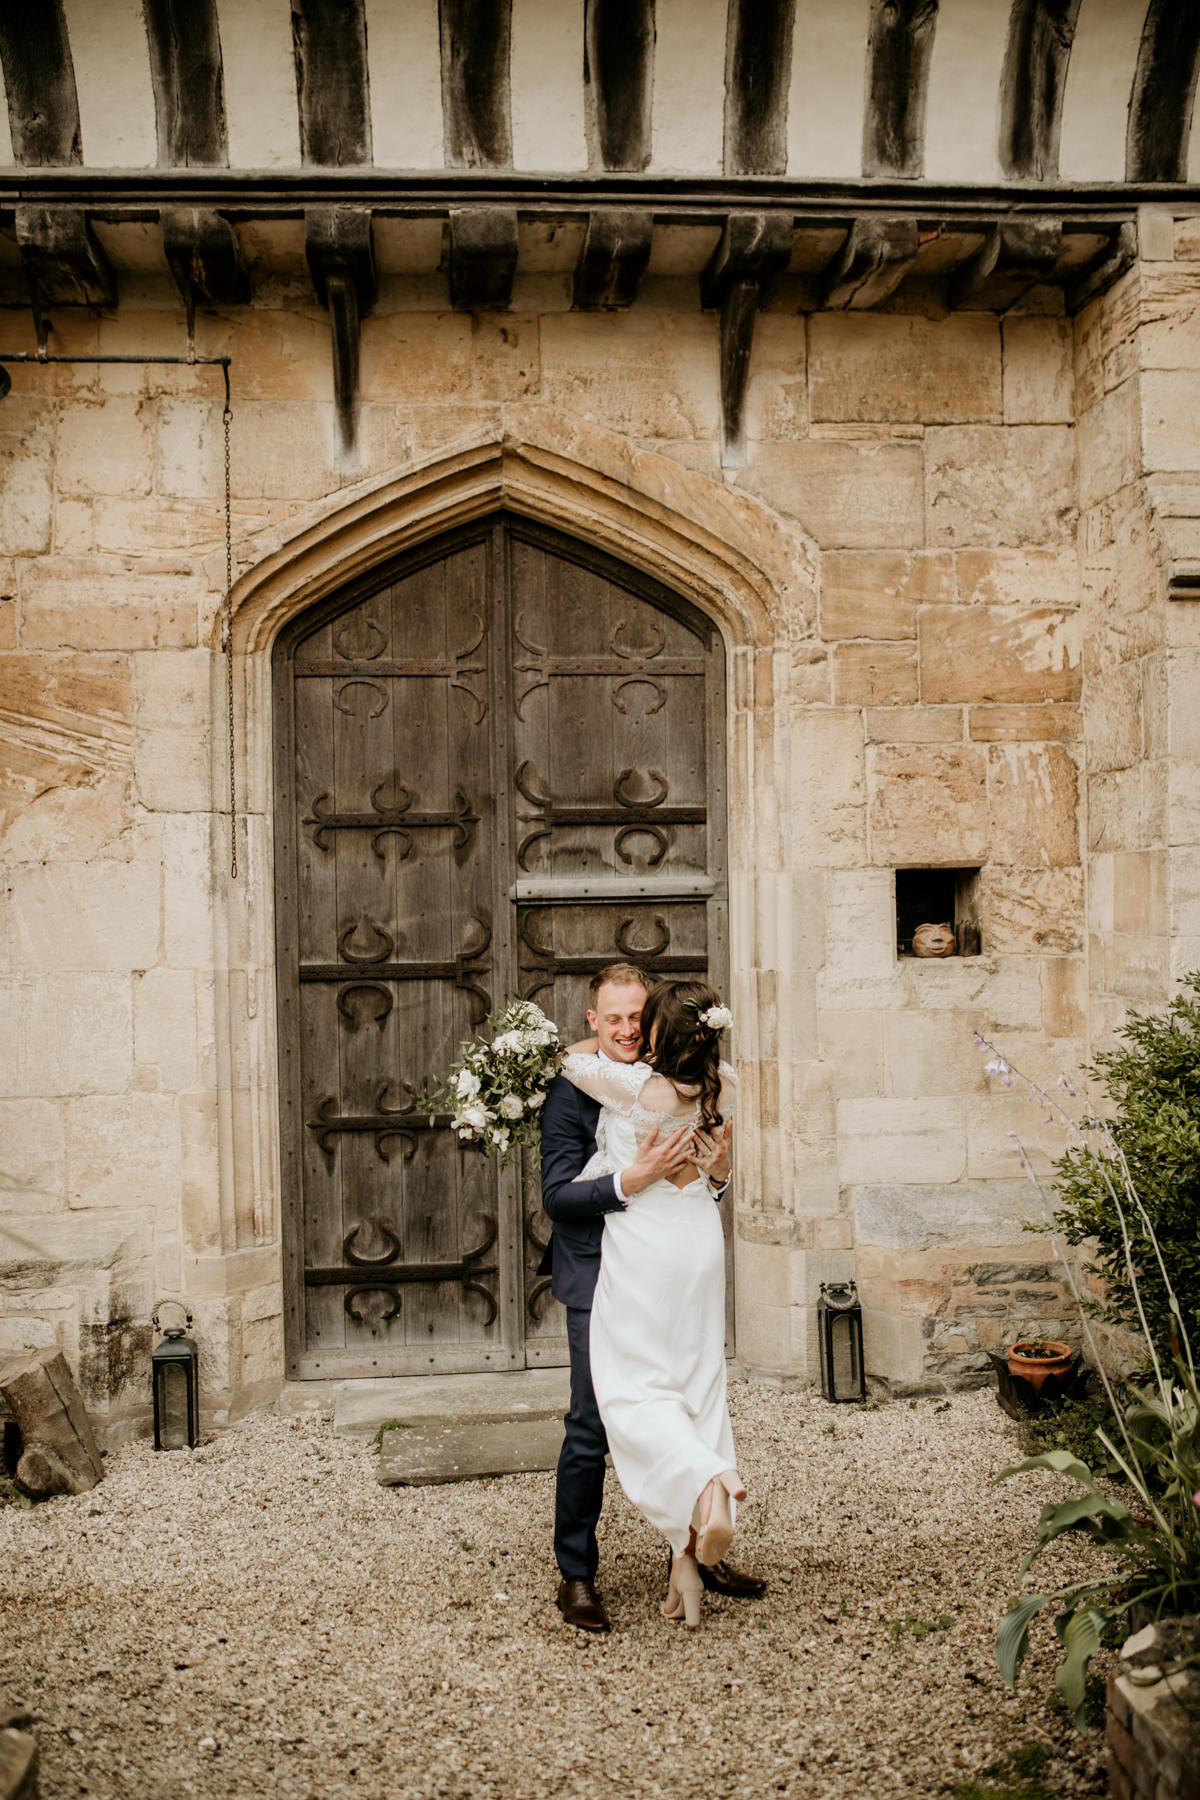 Priors Court Barn bridal portraits by Gloucestershire wedding photographer